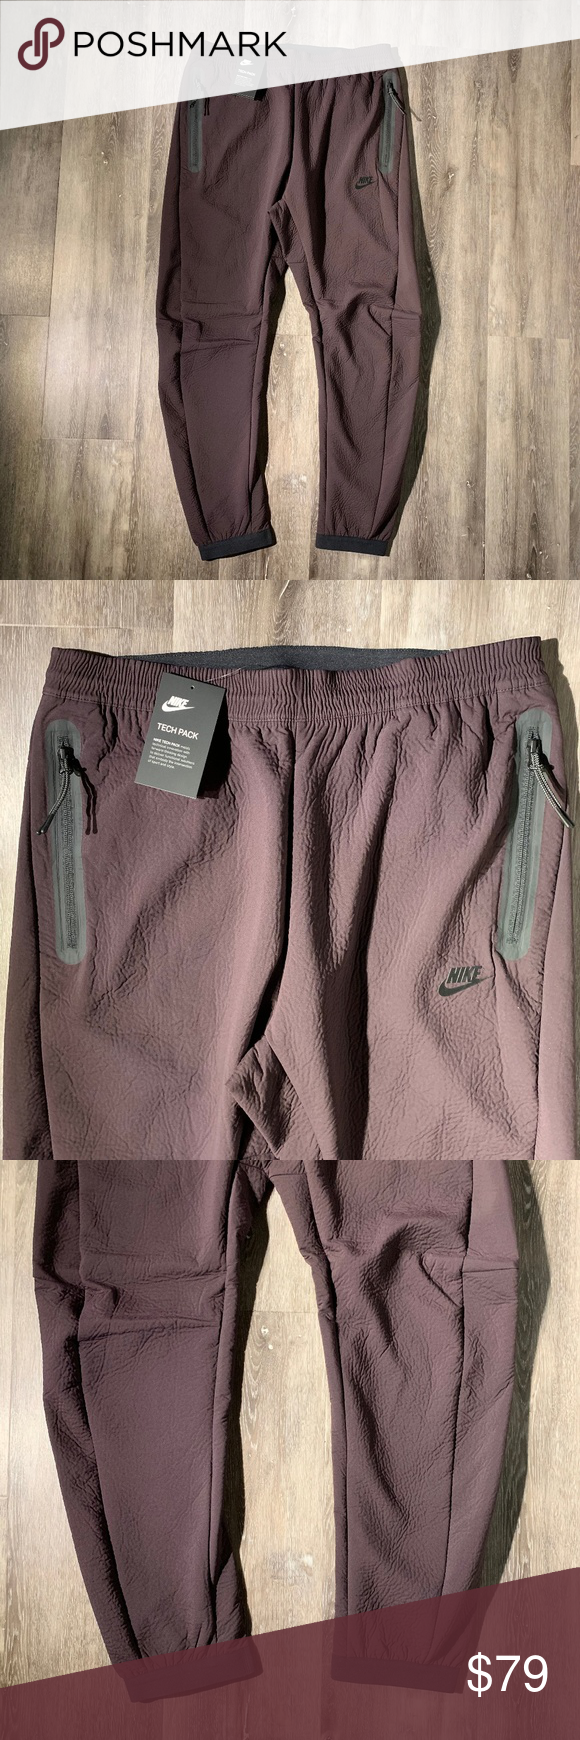 Nike Sportswear Tech Pack Woven Pants Tracksuit NWT Nike Sportswear Men's Tech Pack Woven Pants Tracksuit Burgundy Large * New with tags * Size ...